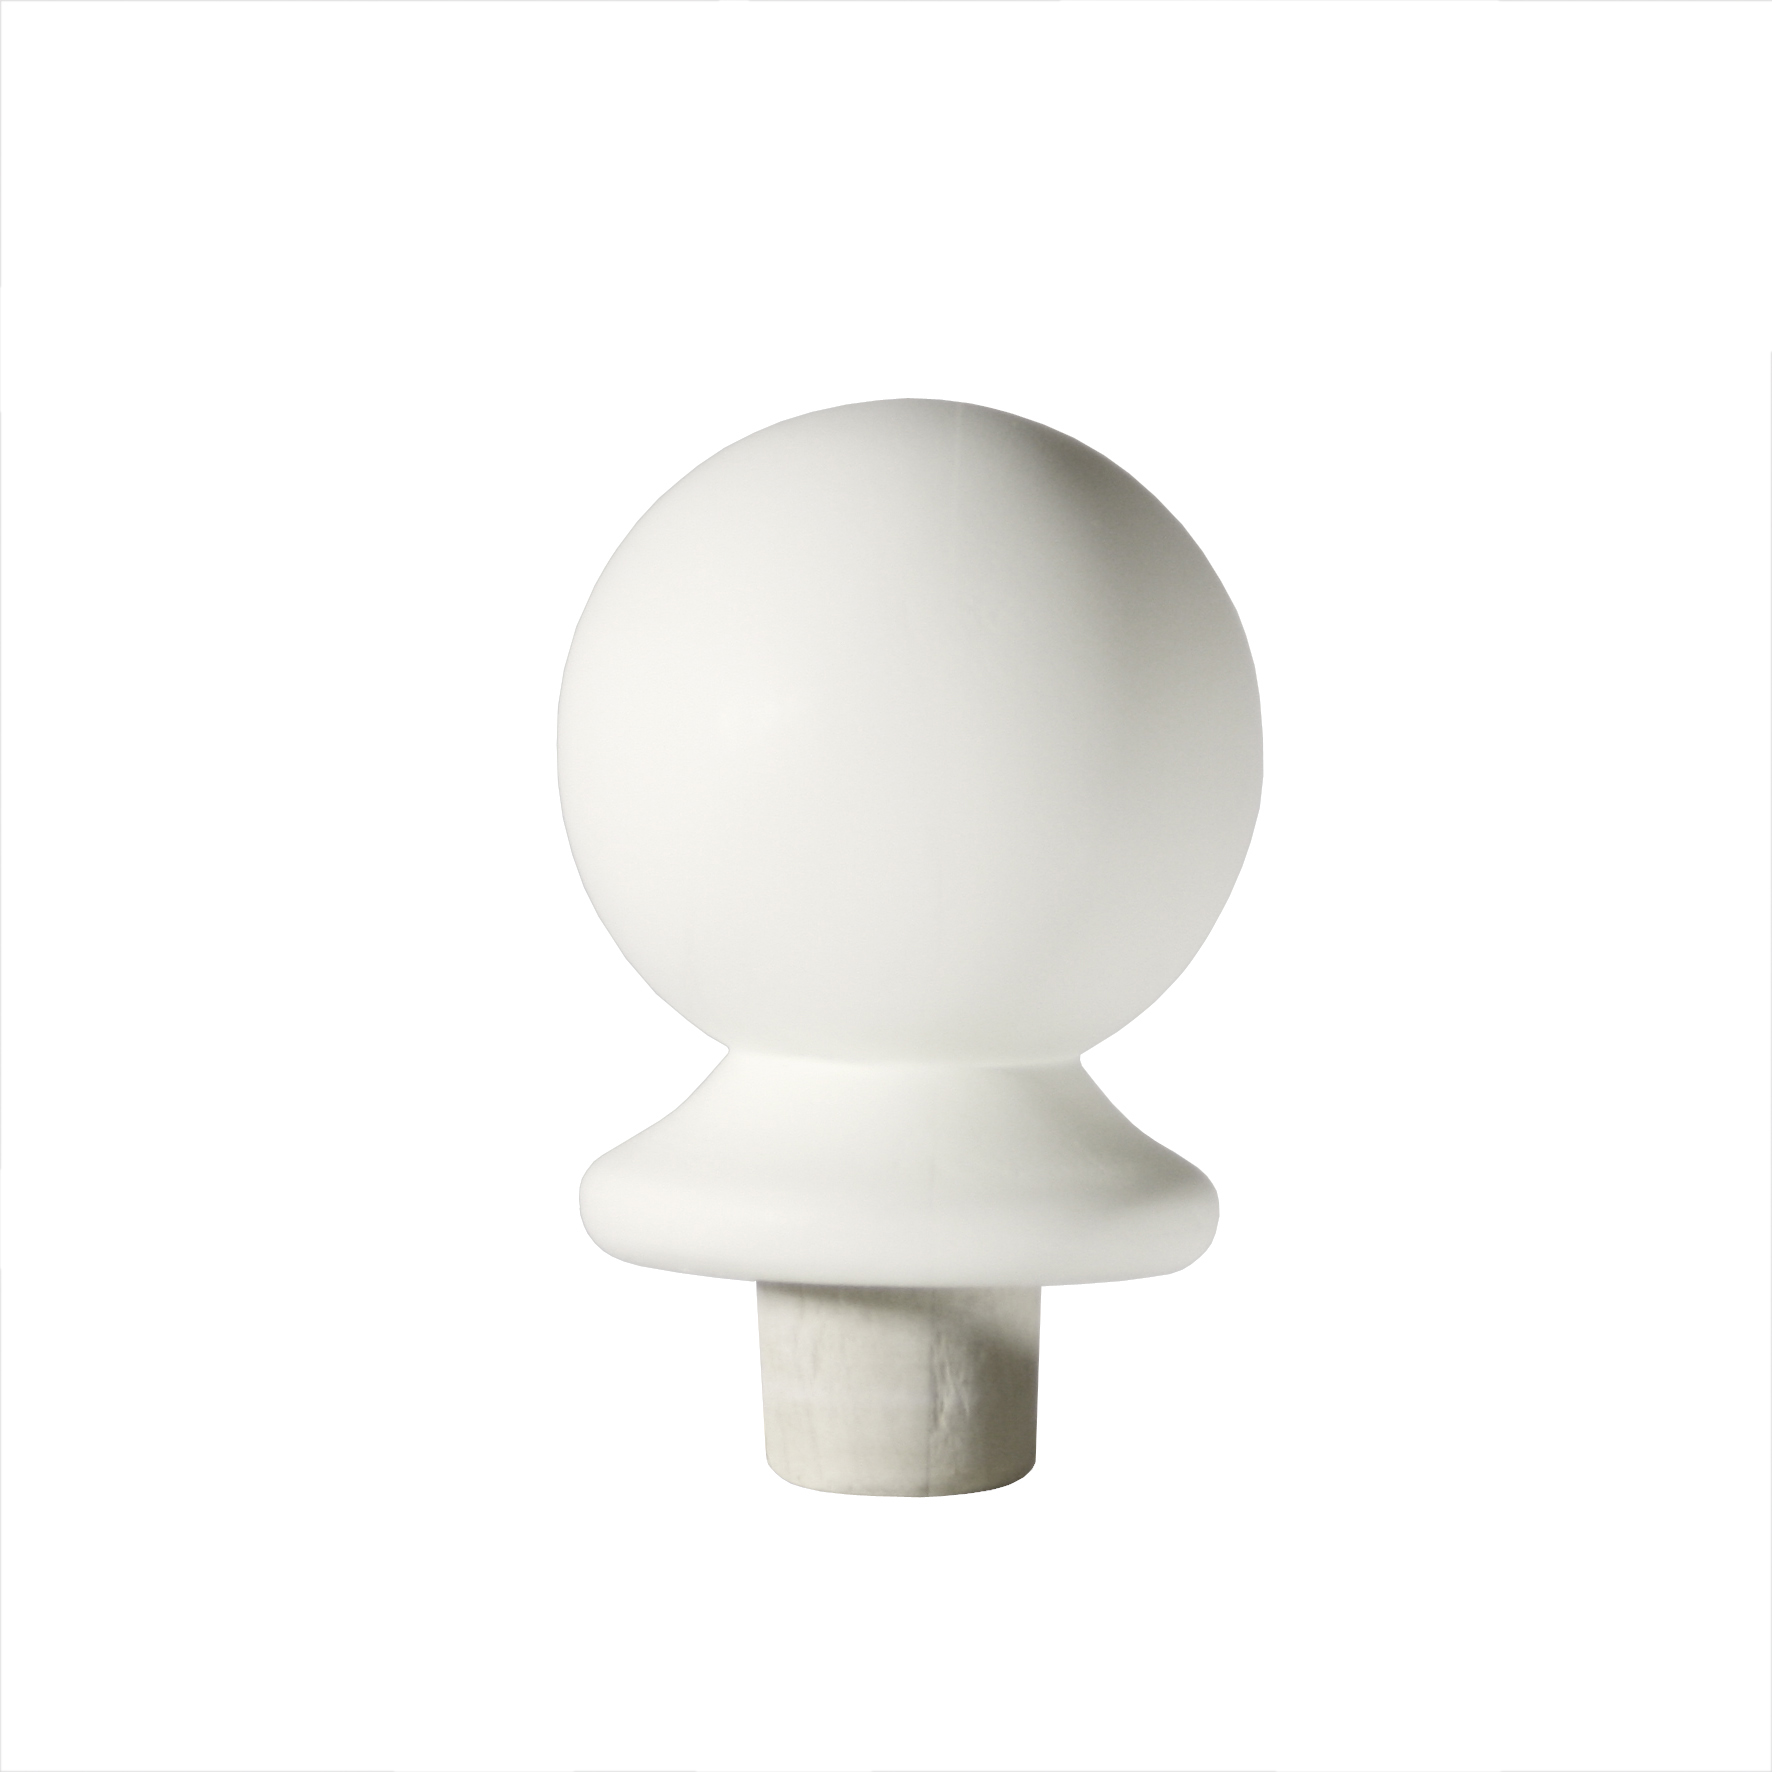 1 White Newel Ball Cap 90